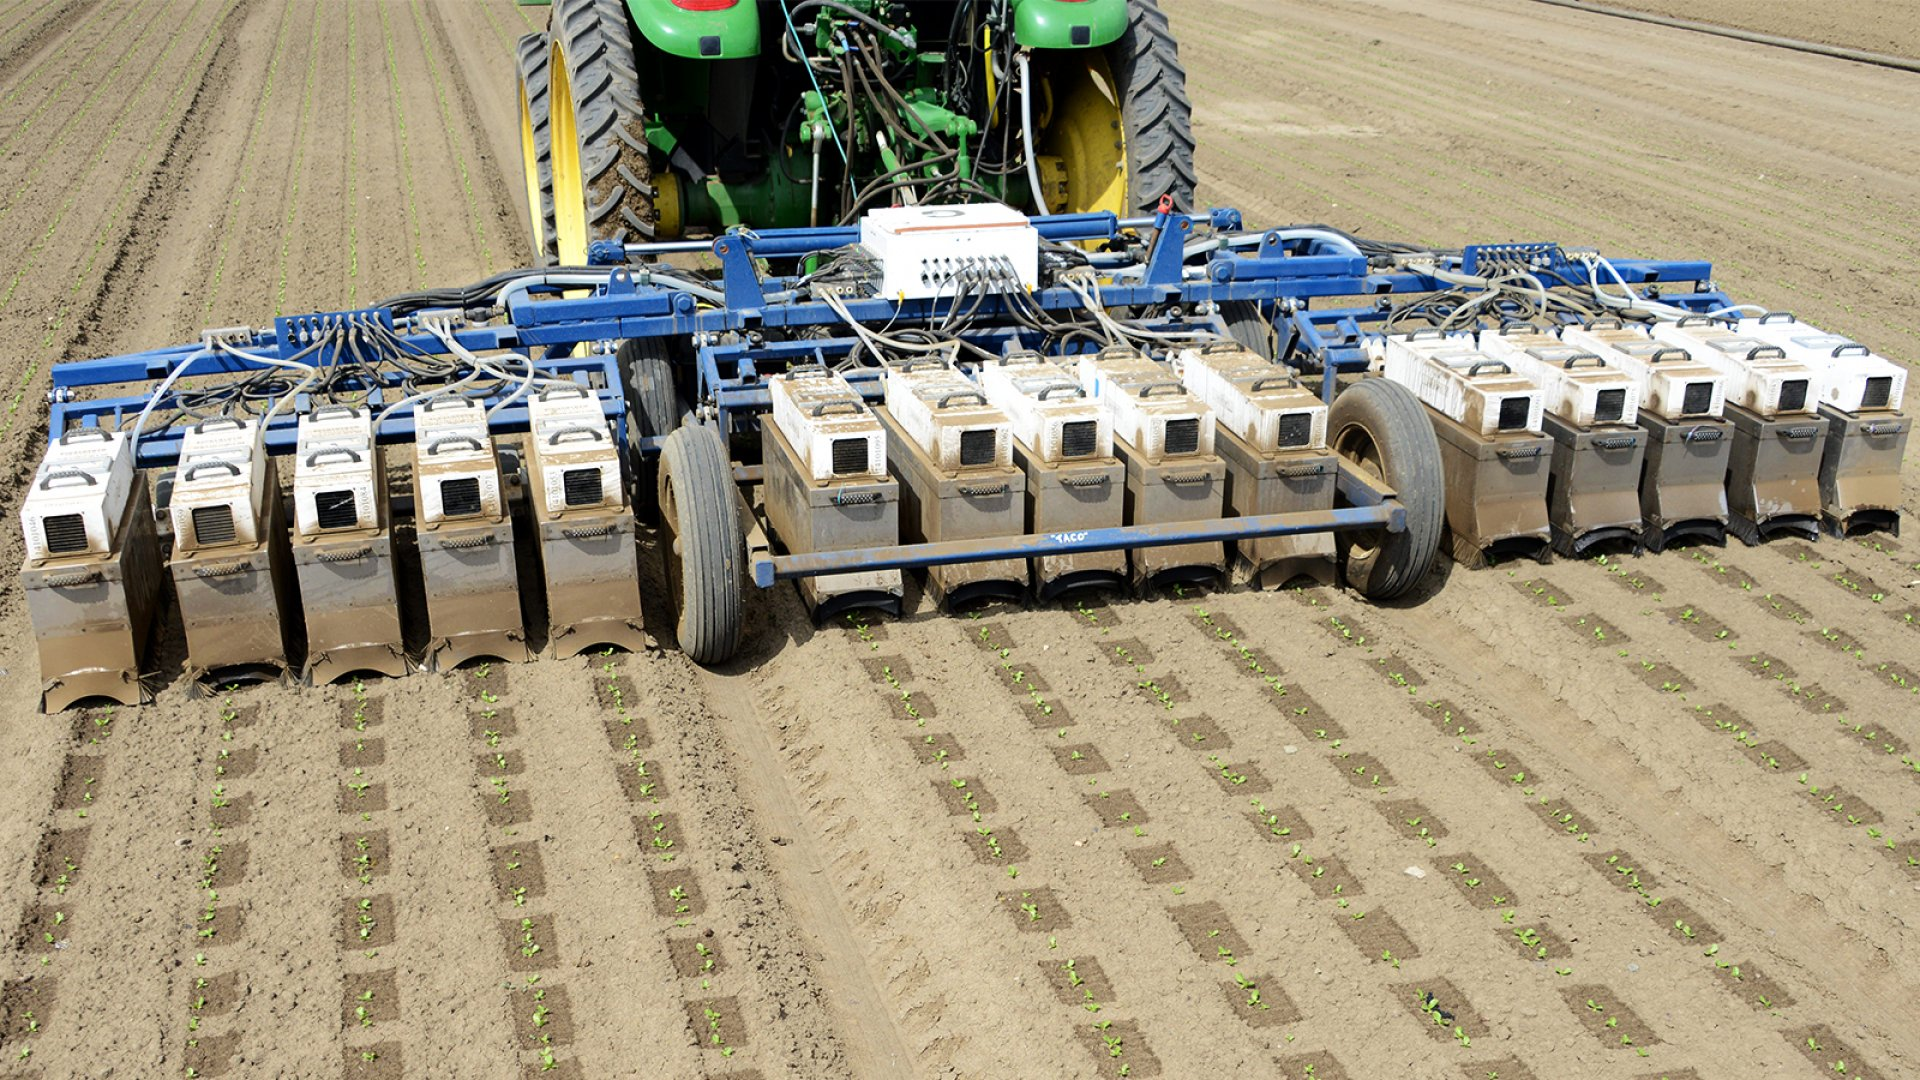 Blue River Technology has created farming machines that can zero in on just the crops that need pesticides, cutting down on overall chemical usage and spend.